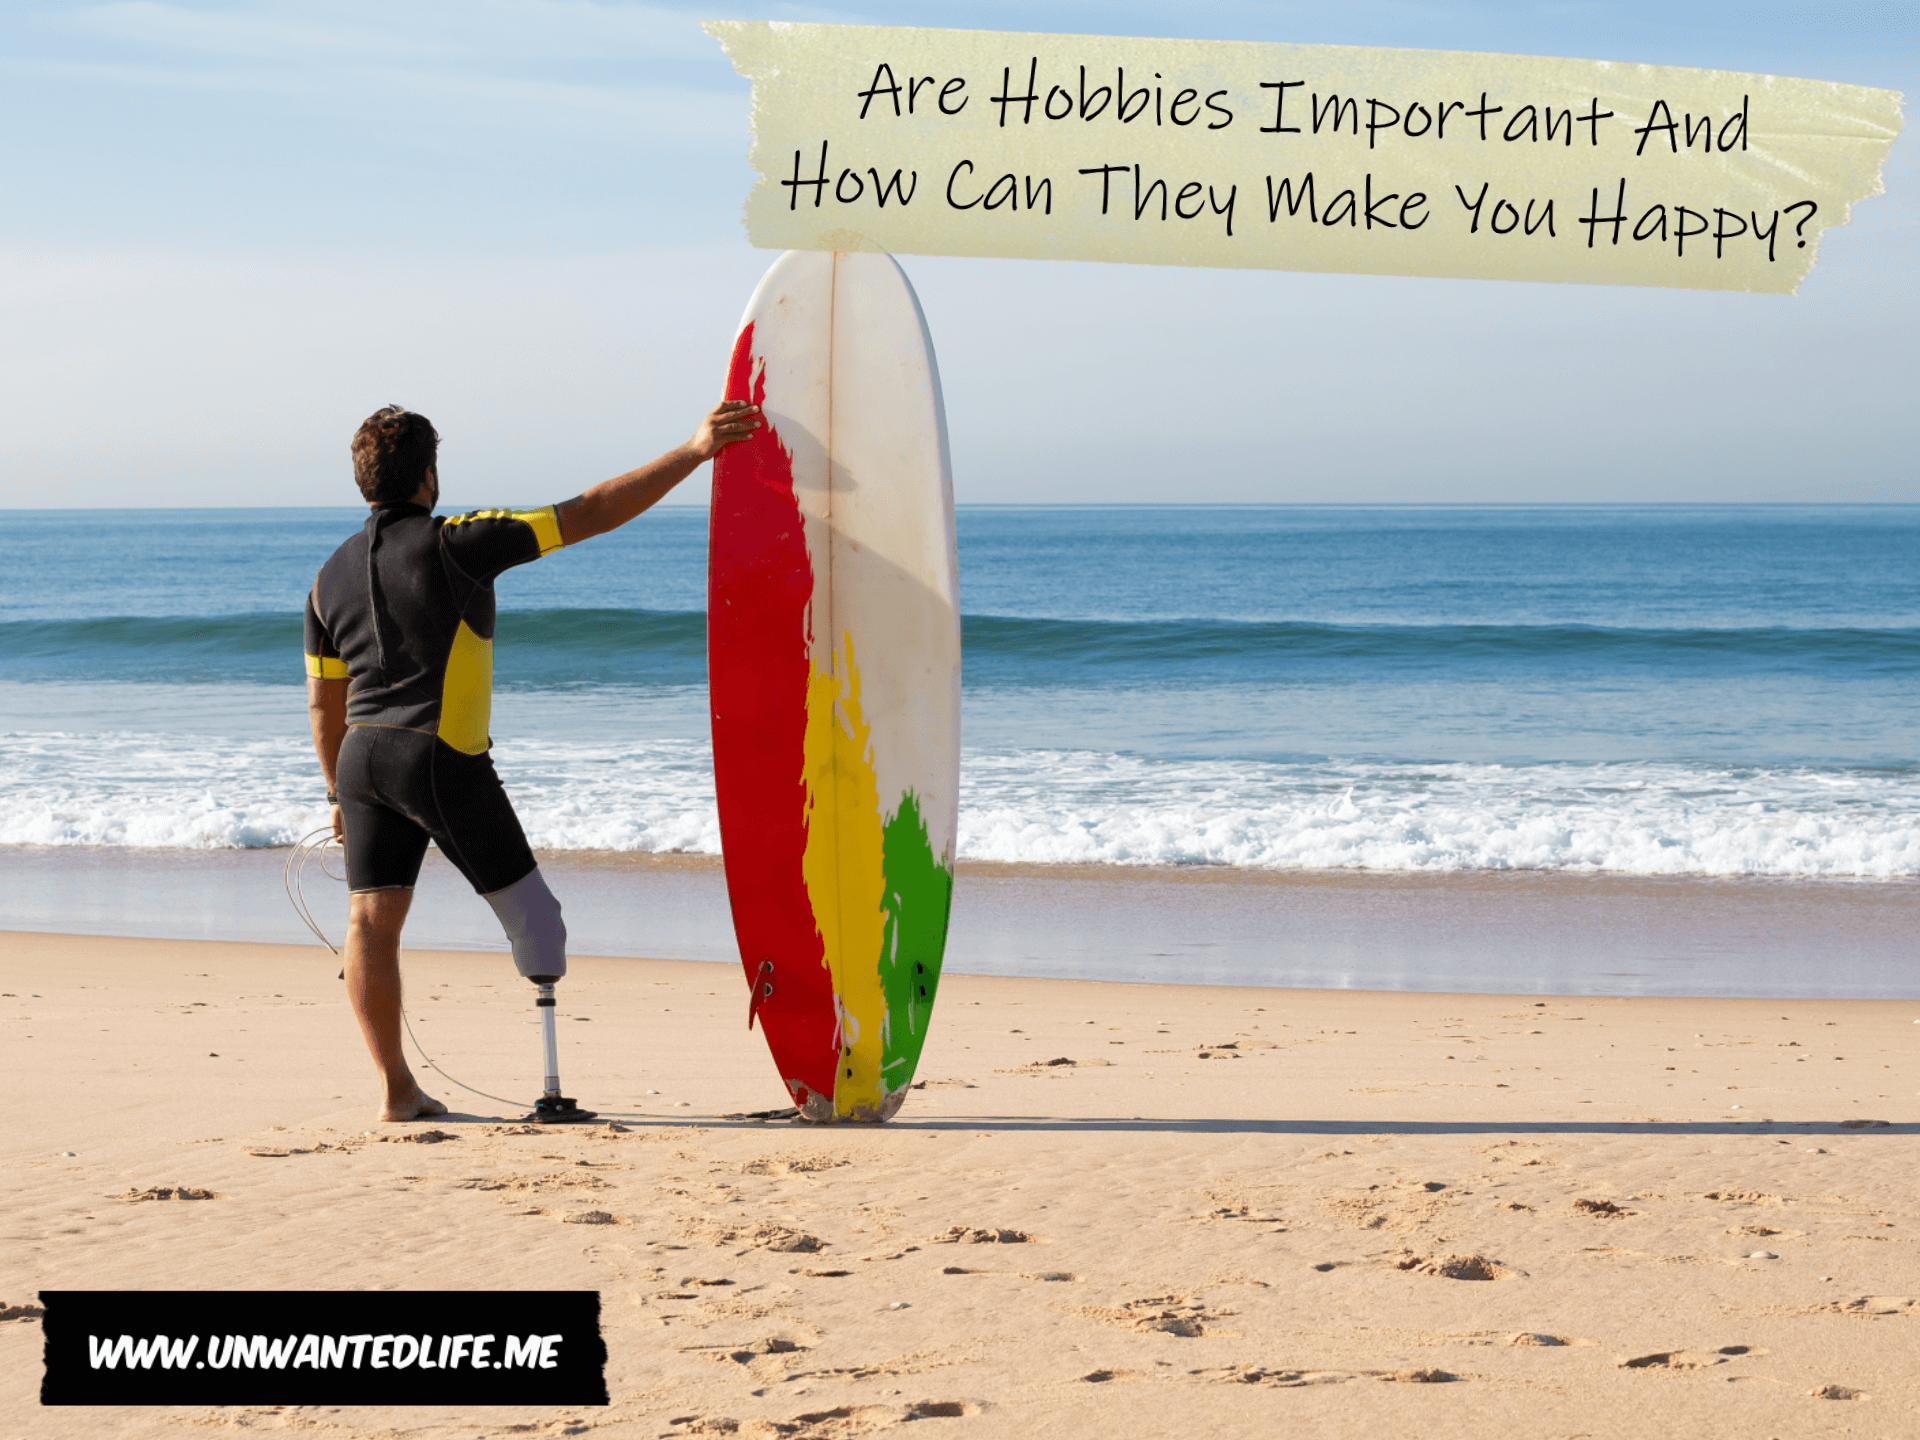 A photo of surfer with a prosthetic right leg looking out at the sea with their surfboard to represent the topic of the article - Are Hobbies Important And How Can They Make You Happy?